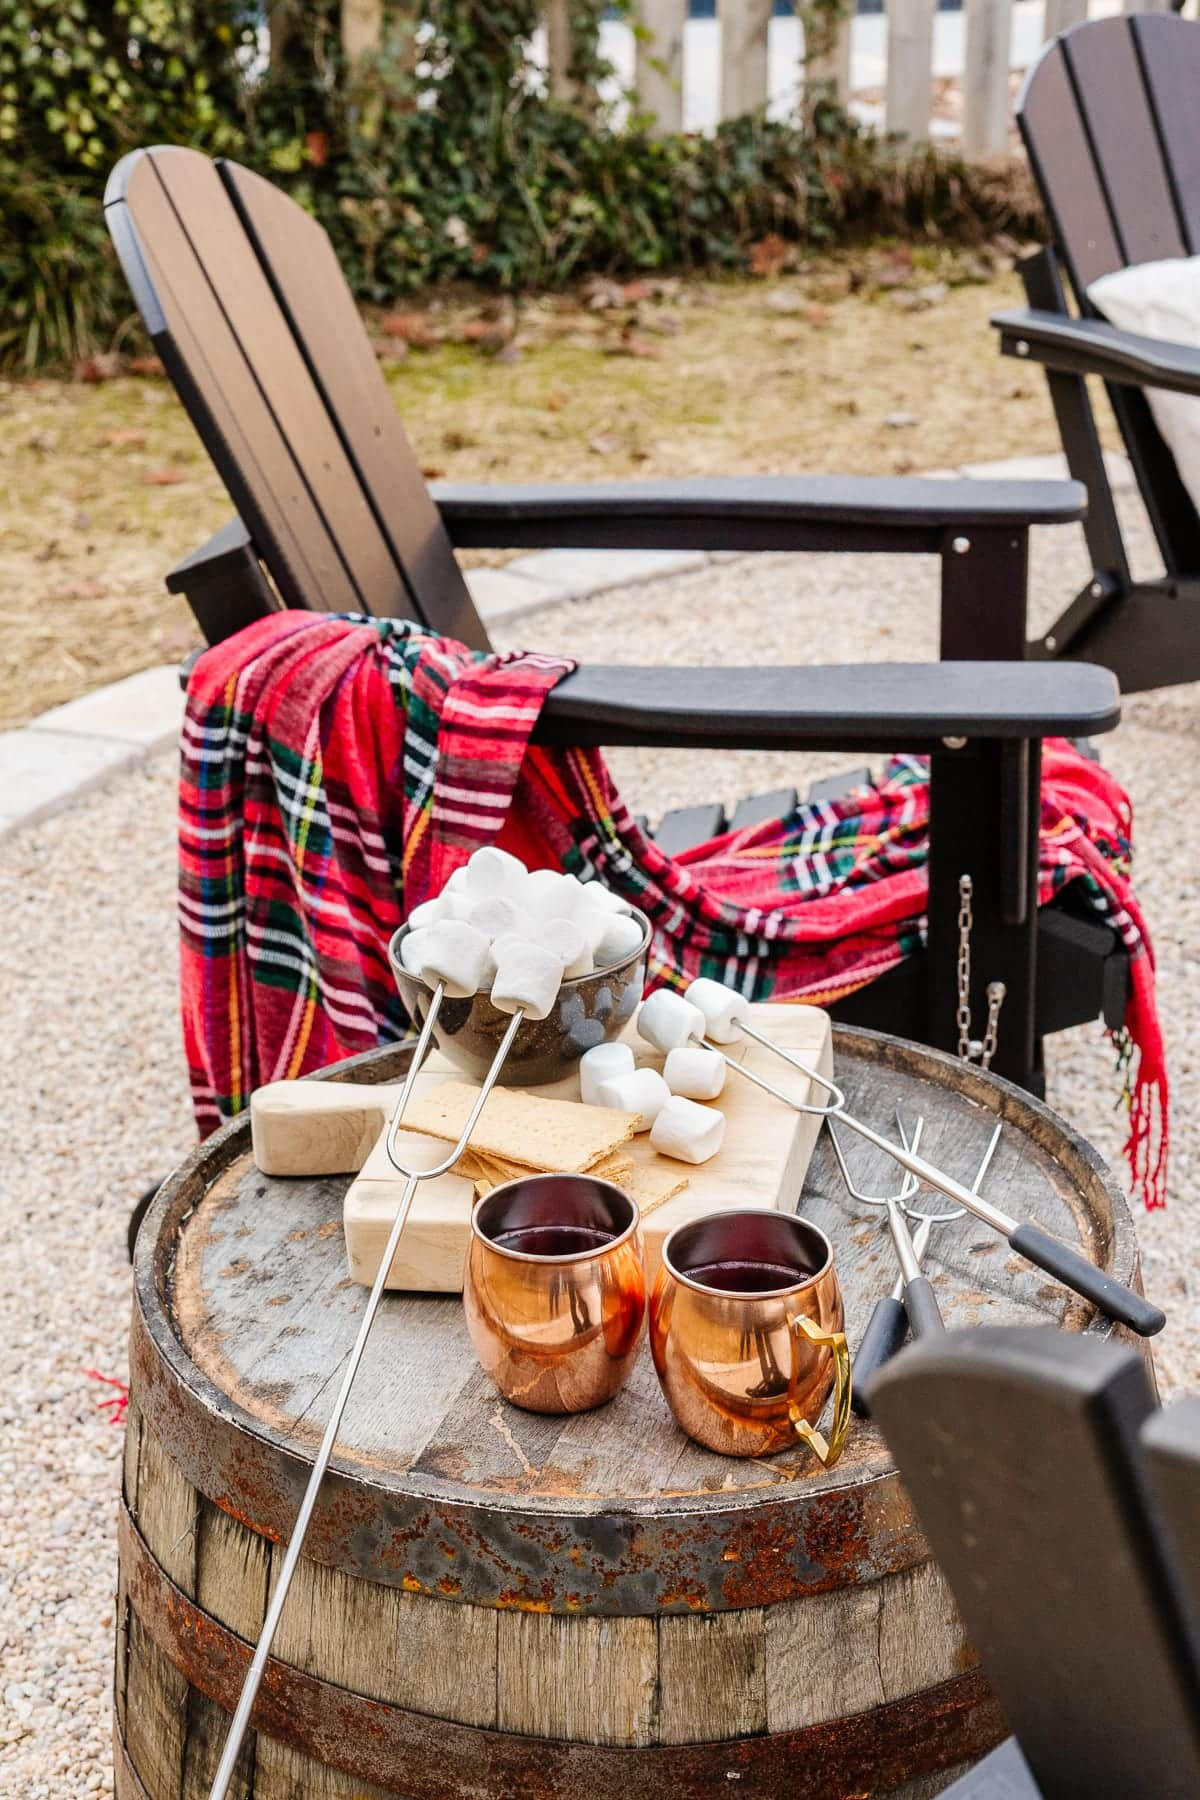 Adirondack chair with barrel side table and s'mores ingredients